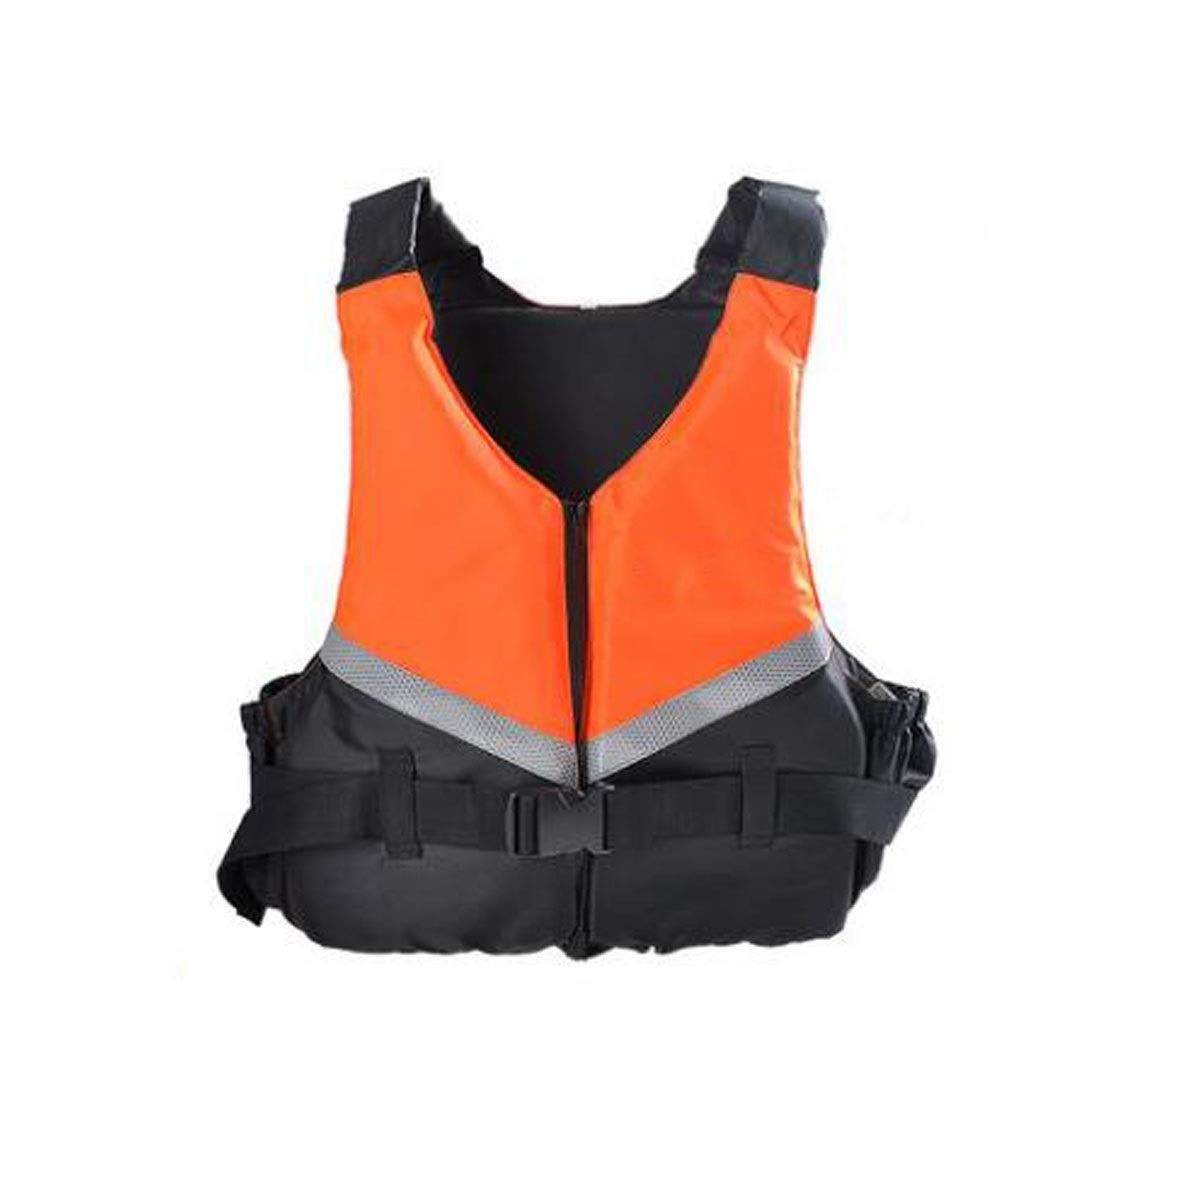 orange XL Youshangshipin Inflatable Life Jacket Adult Swim Vest for Snorkeling, Swimming, Outdoor Play, Size  L, XL, XXL, color  bluee, Green, orange, Pink, Yellow Wear Resistant